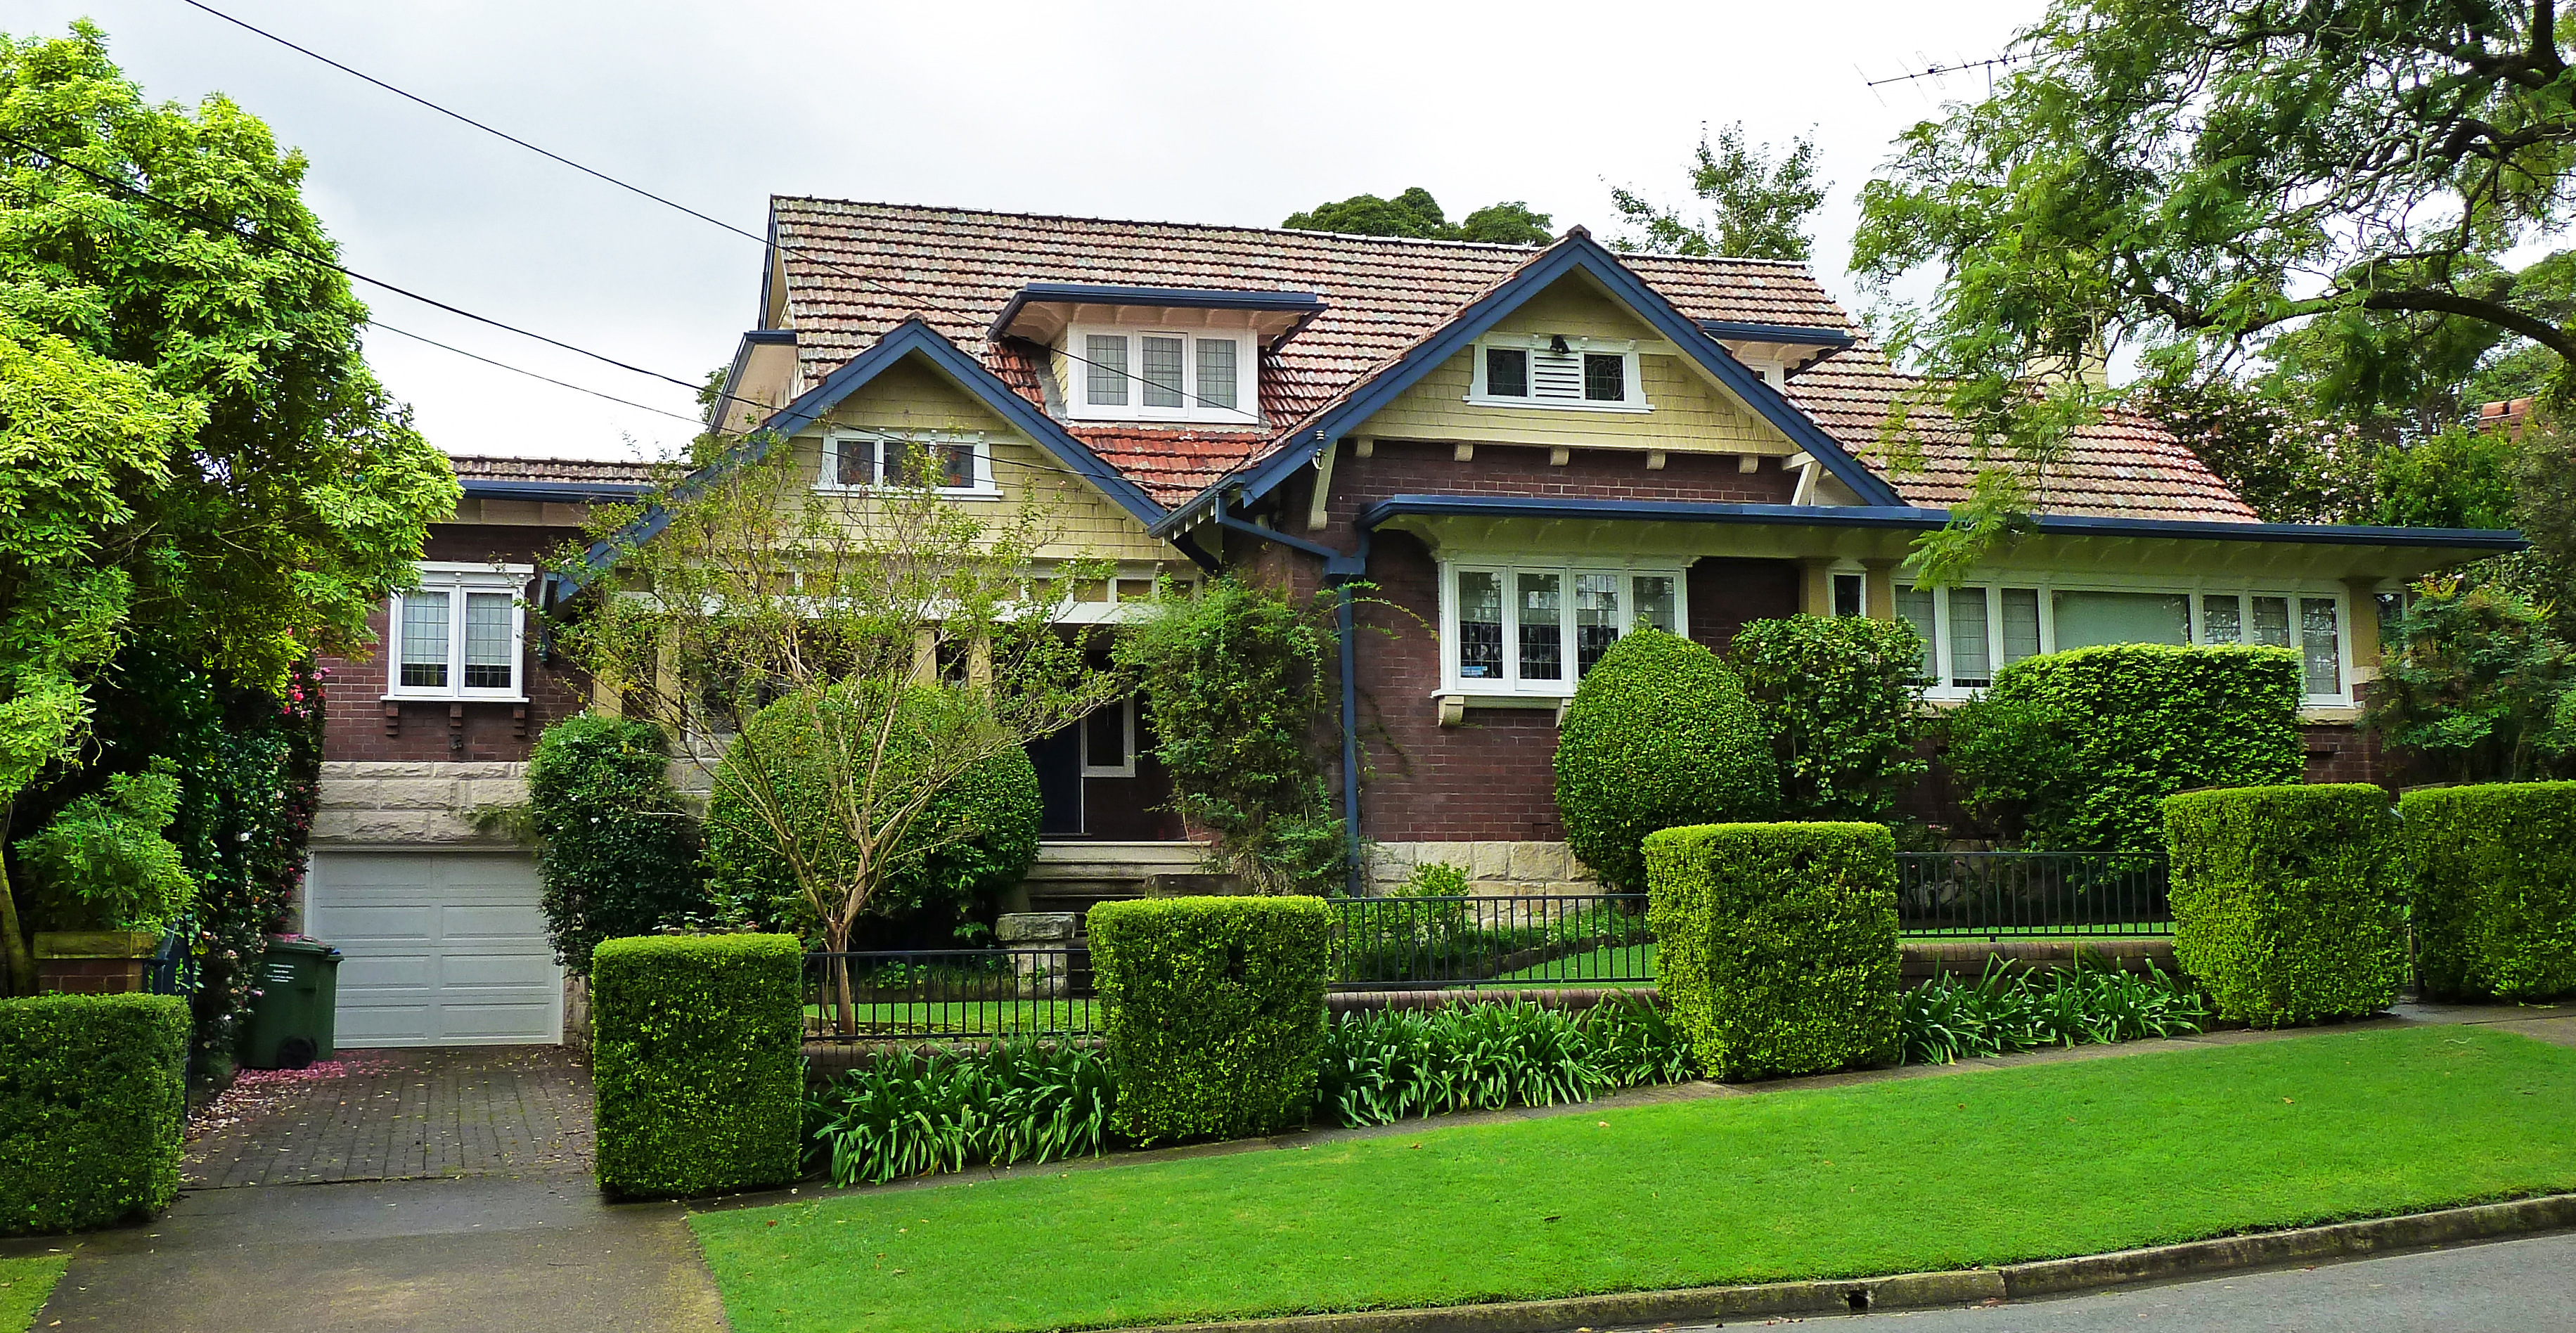 File:23 Waimea Road, Lindfield, New South Wales (2011-04 ...